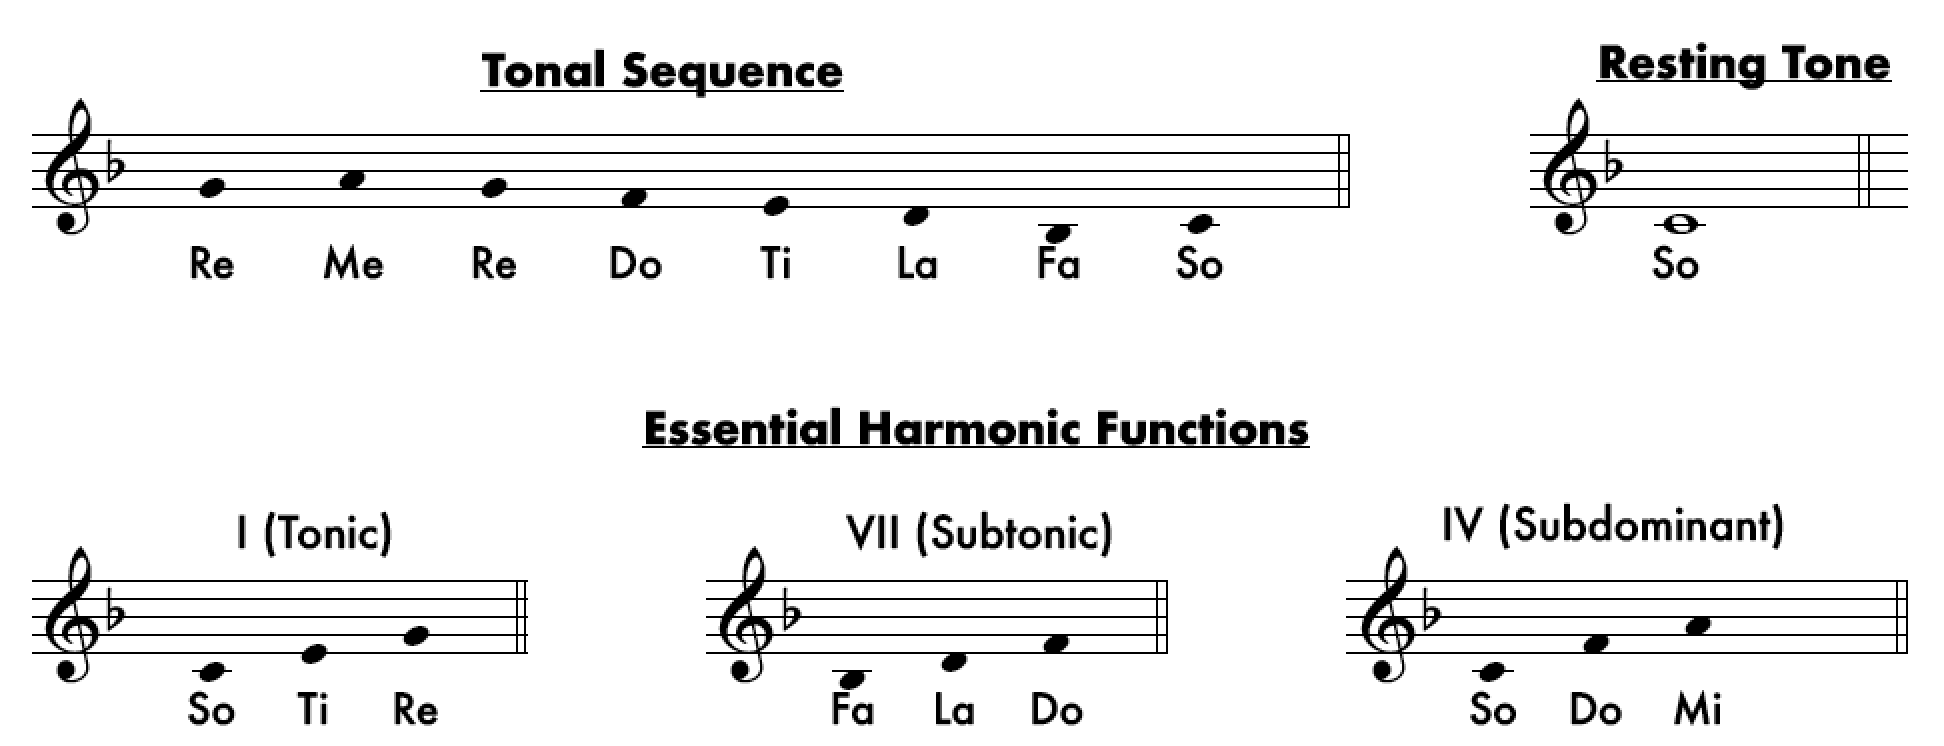 Mixolydian Tonality - From Major to Locrian: An Overview of The Tonalities